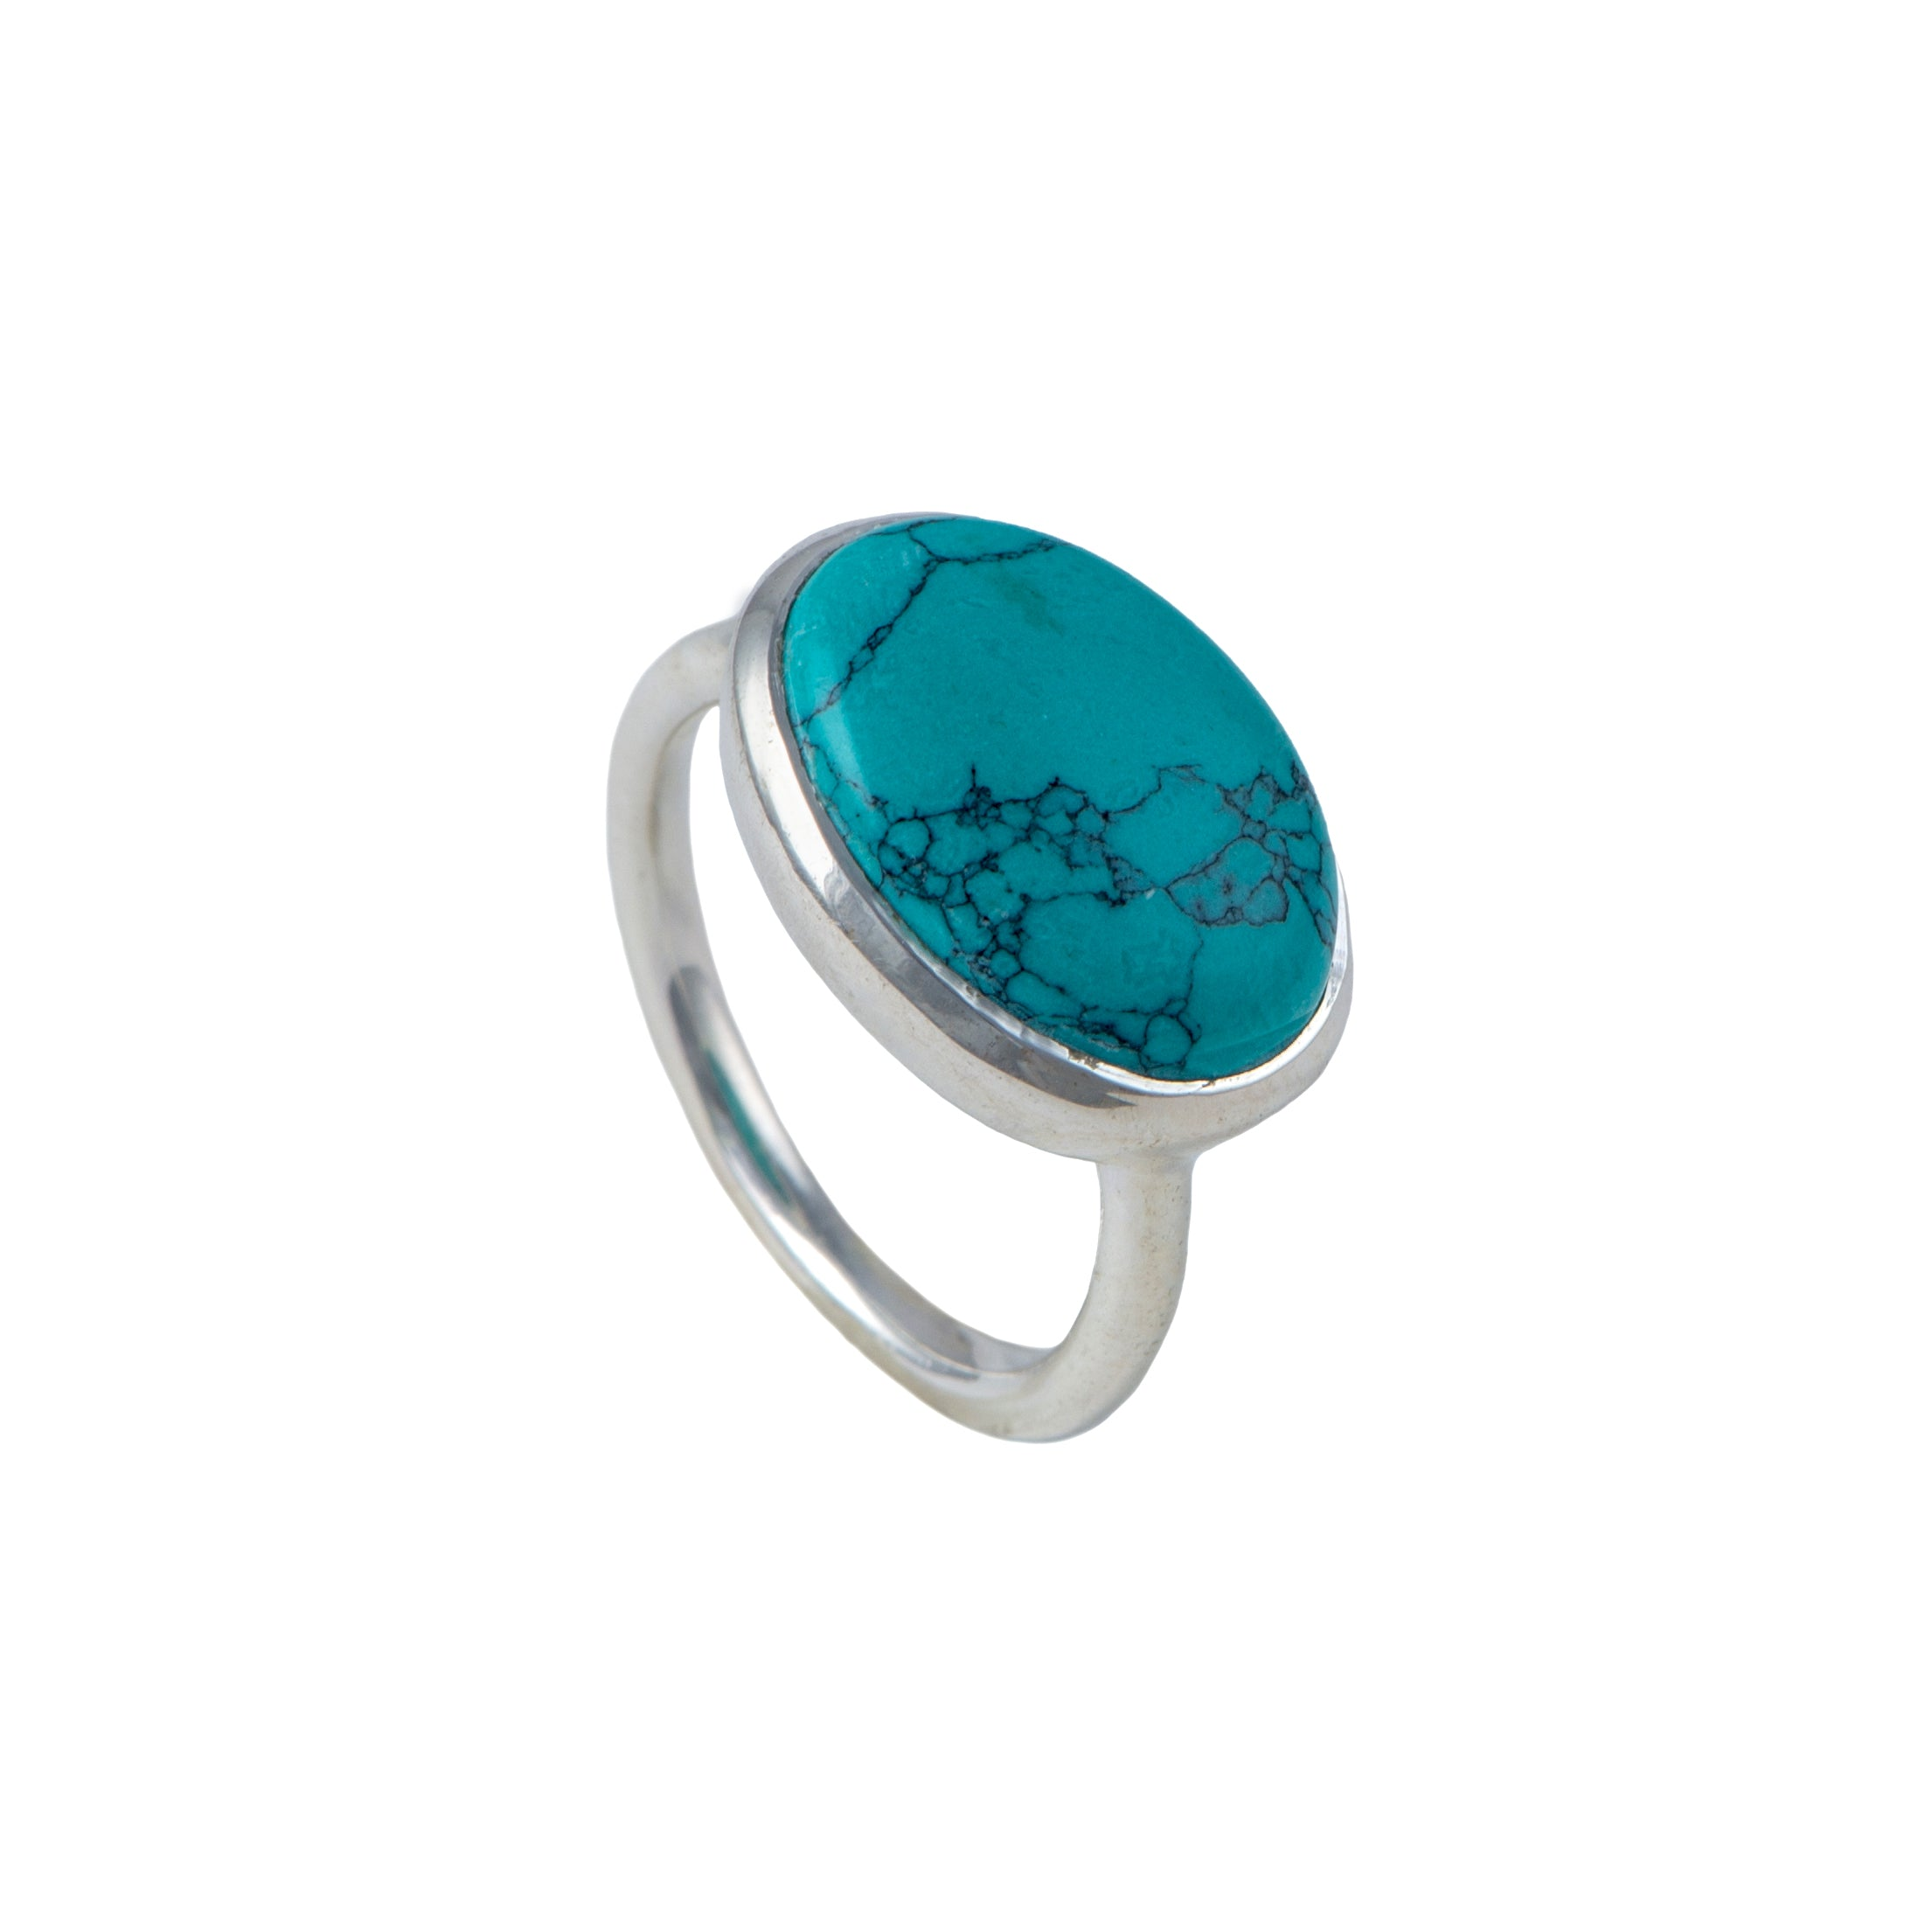 Cabochon Oval Cut Natural Gemstone Sterling Silver Ring - Turquoise